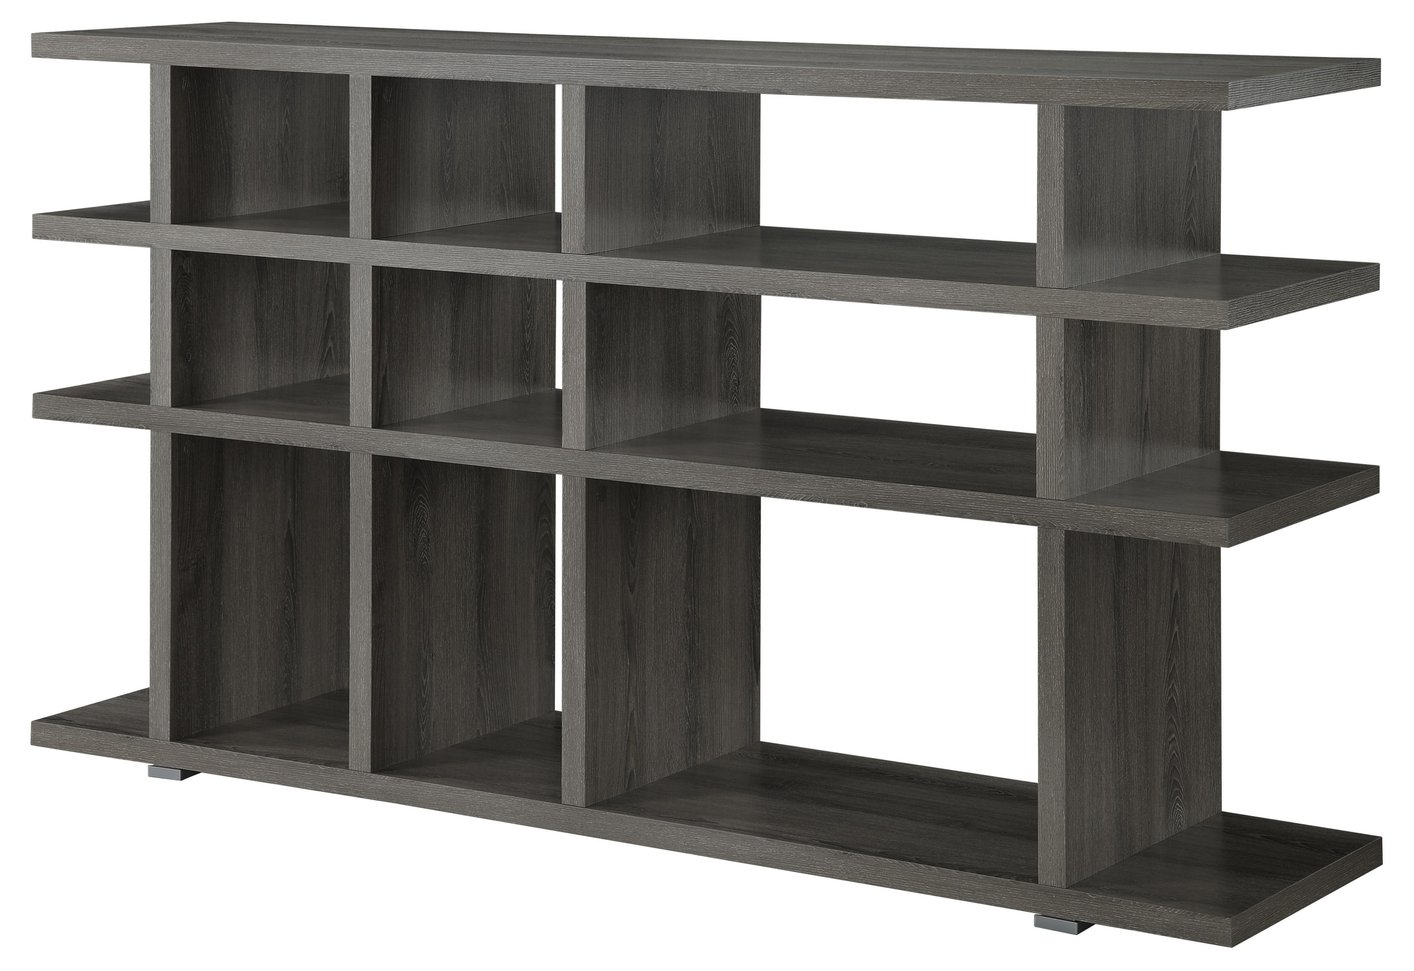 oak collection headboard bookcases narrow south soho in kanji weathered assembly instructions shore l bookcase furniture shelf